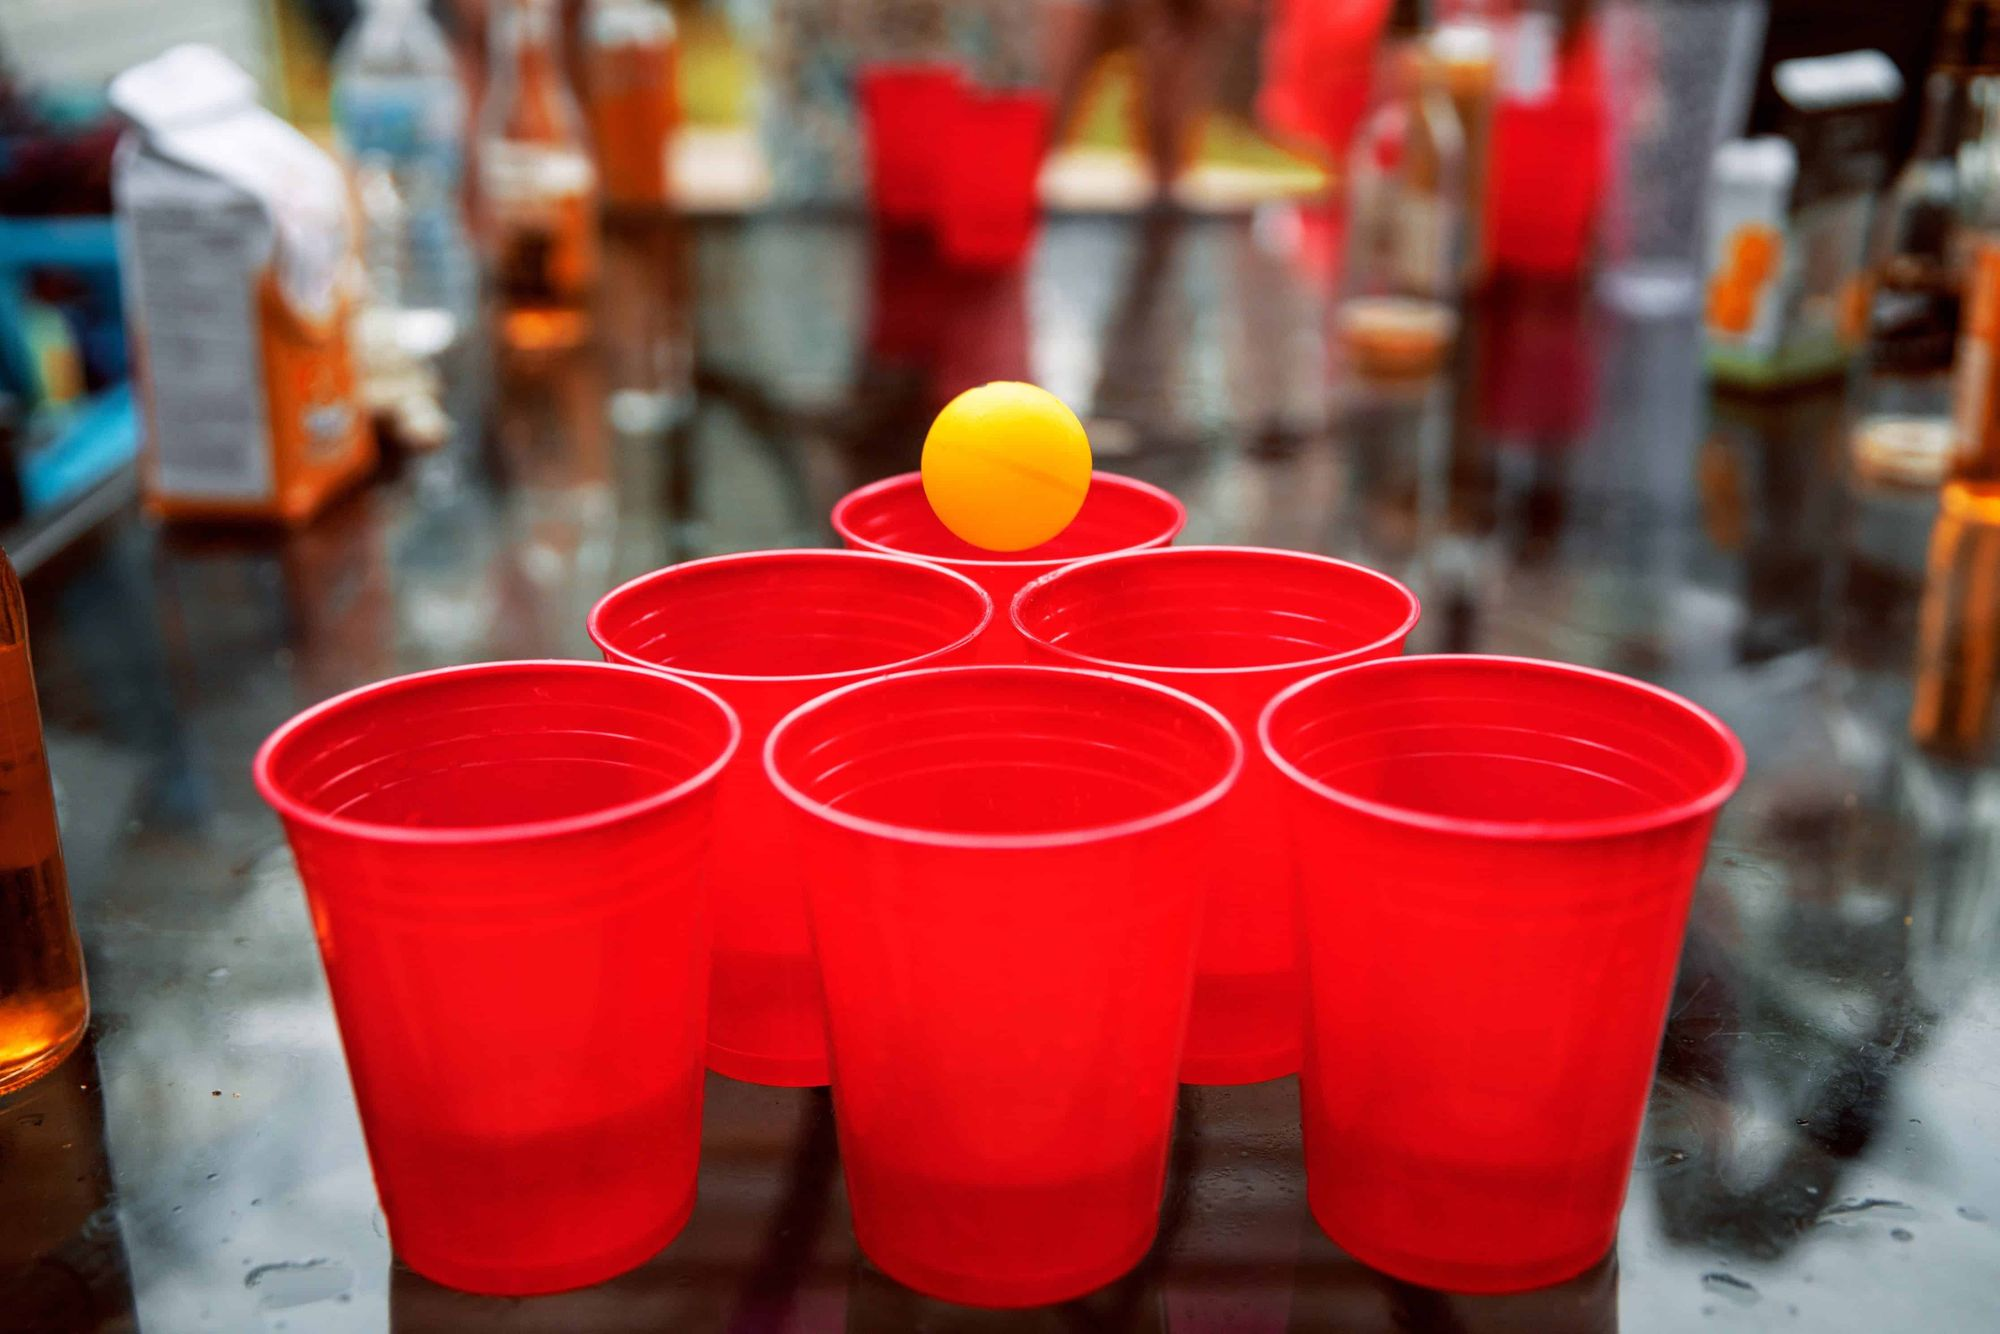 6 cups set up for a game of beer pong